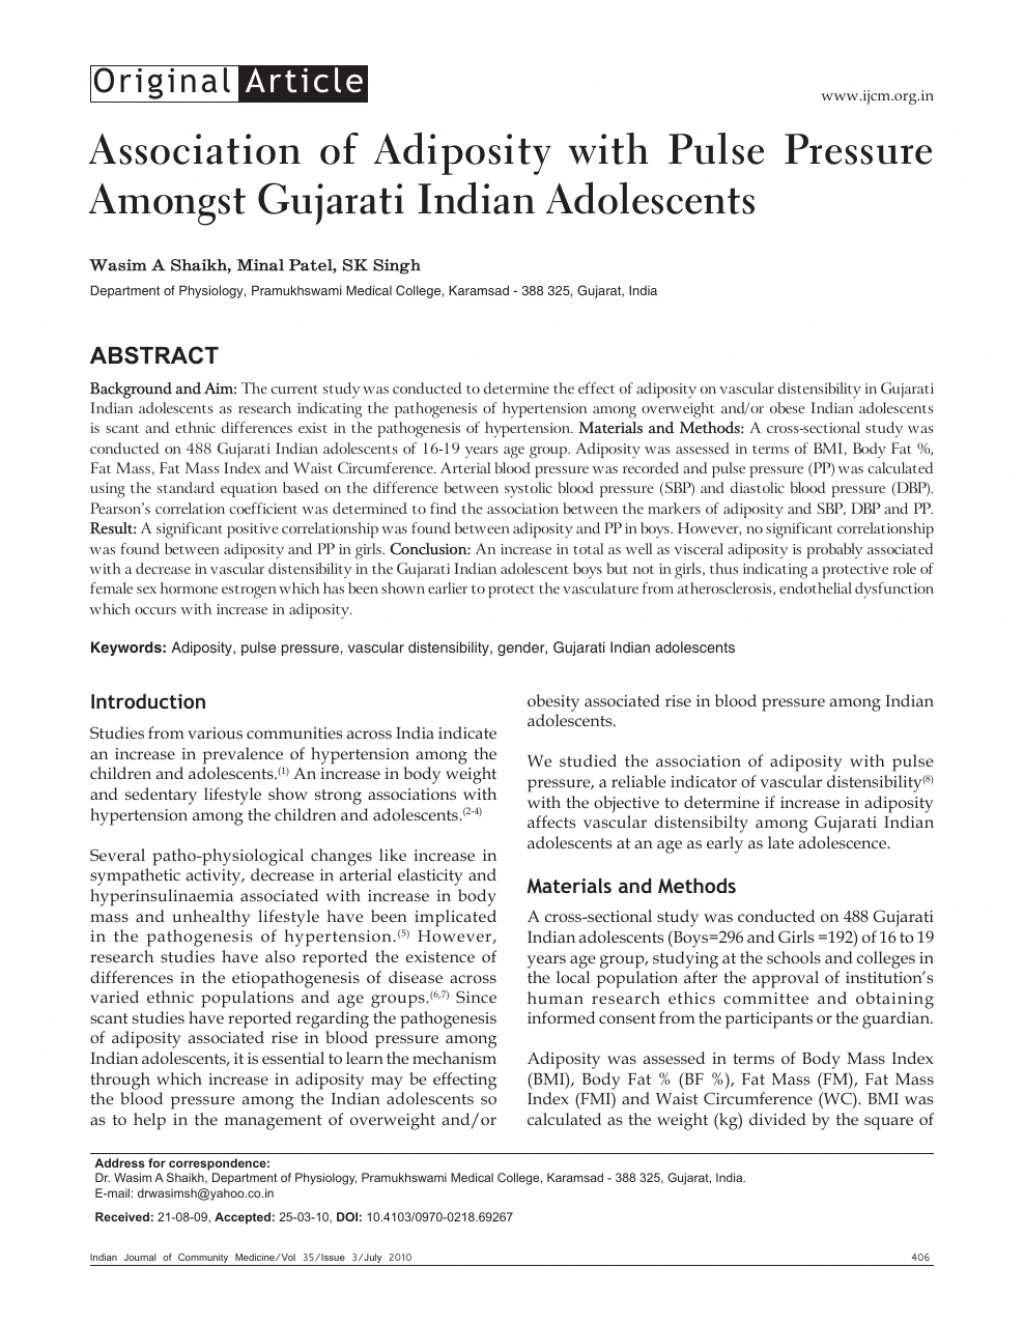 008 Obesity And Hypertension Researchs Dreaded Research Papers Large